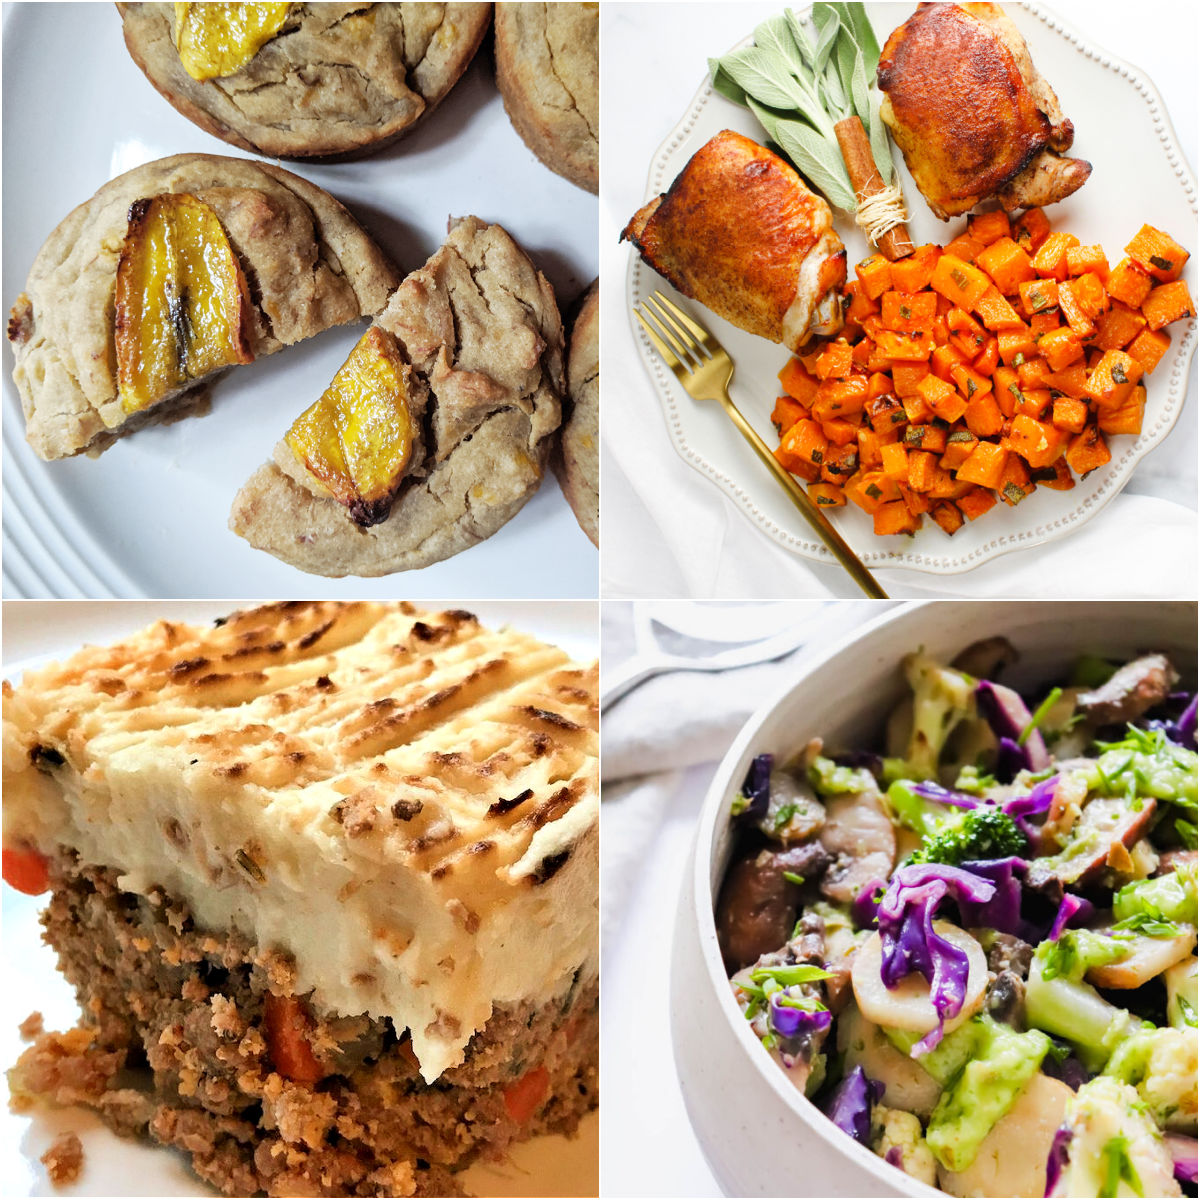 Paleo AIP Recipe Roundtable #340 | Phoenix Helix - *Featured Recipes: Sweet Plantain Mini Cakes, Shephard's Pie with Cauliflower Parsnip Mash, Sheet Pan Cinnamon Roasted Chicken, and Sautéed Veggies with Pears & Chives